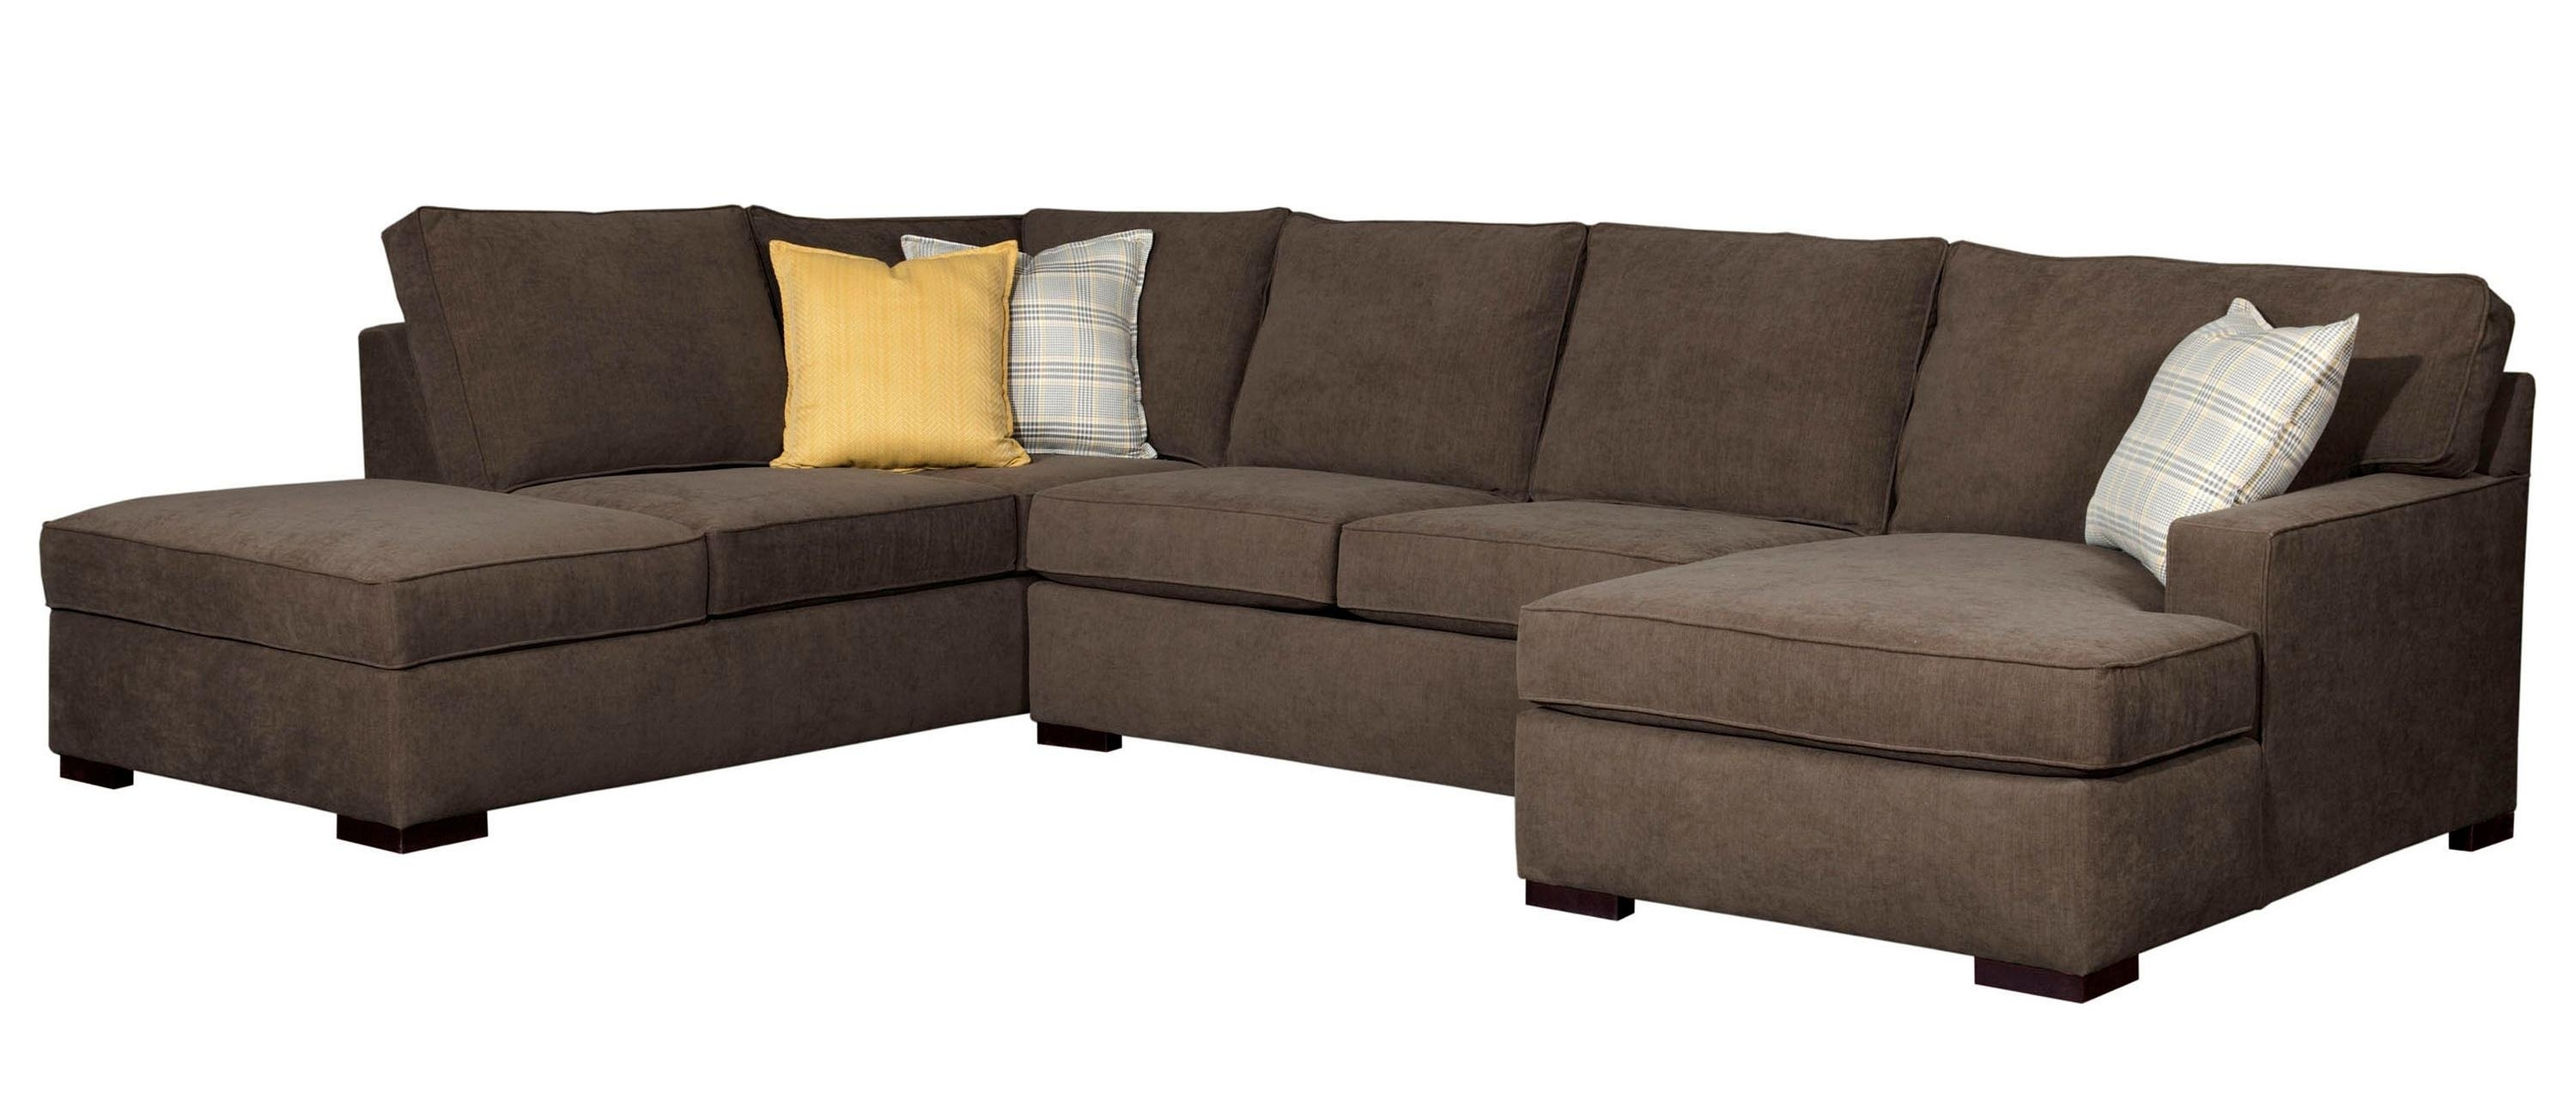 Broyhill Furniture Raphael Contemporary Sectional Sofa With Raf inside Norfolk Chocolate 6 Piece Sectionals With Laf Chaise (Image 3 of 30)